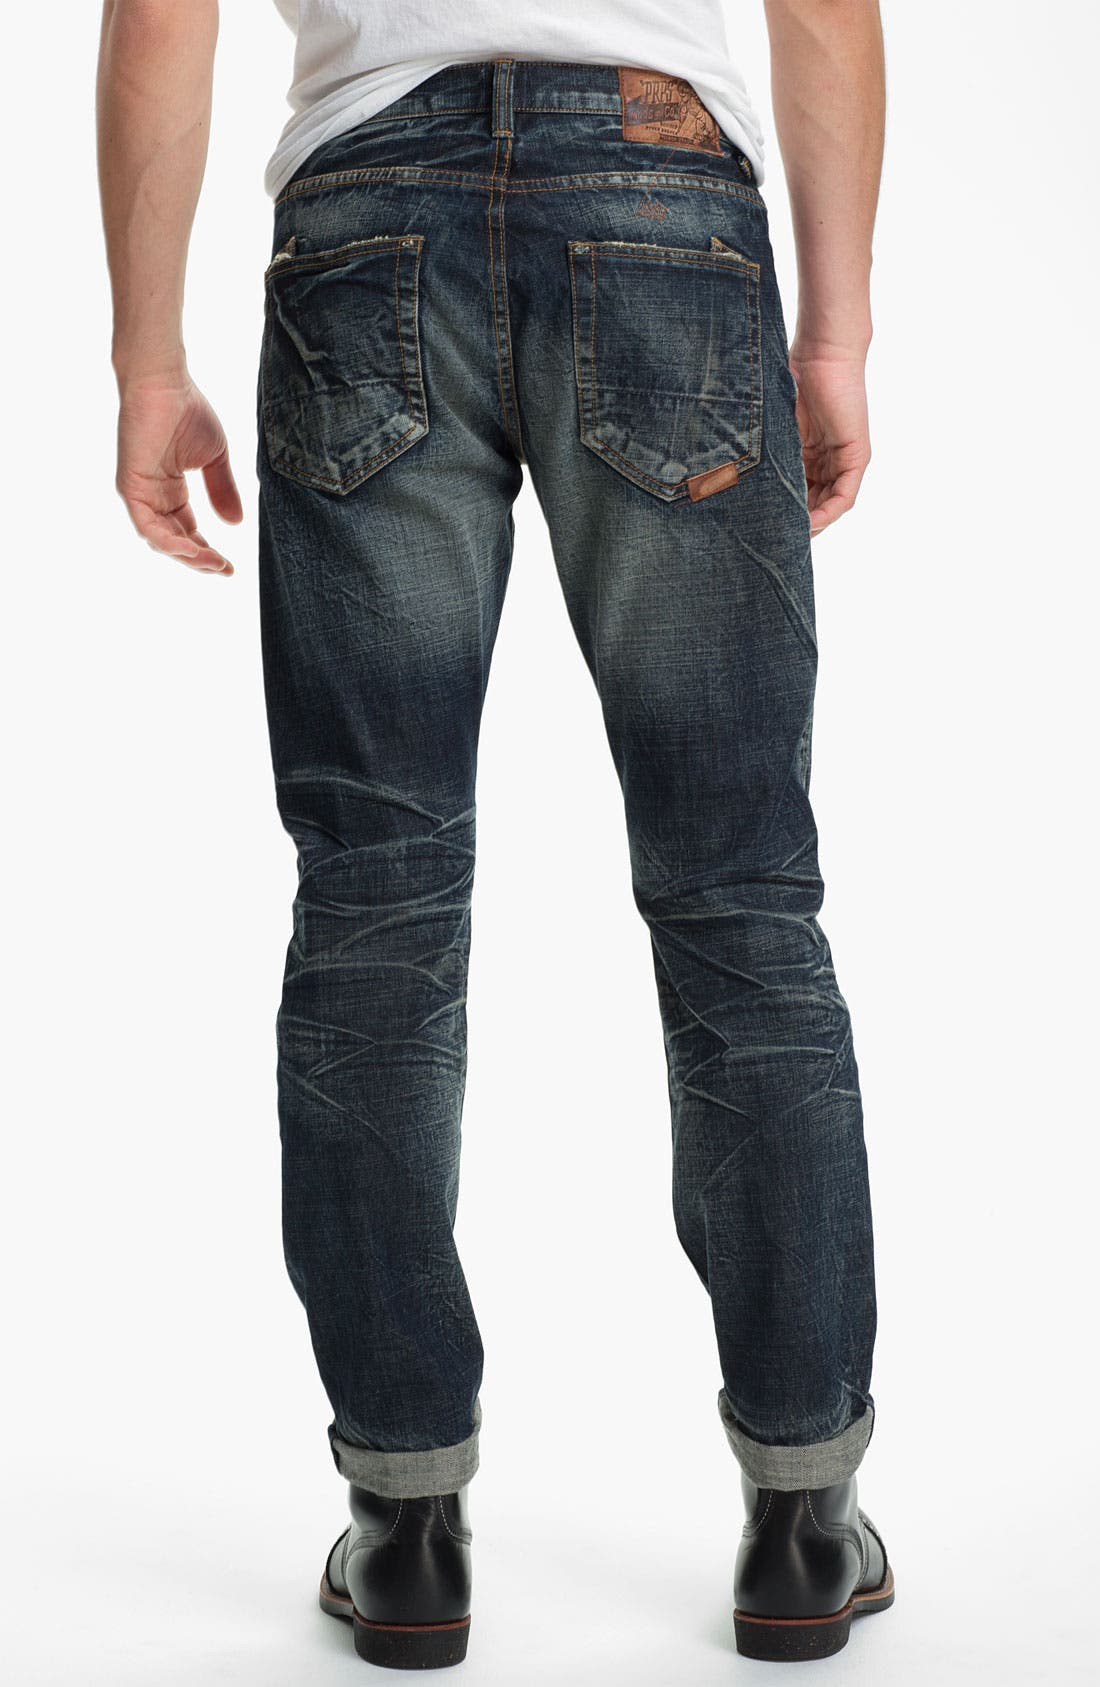 Alternate Image 1 Selected - PRPS 'Barracuda' Straight Leg Jeans (Dark Blue)